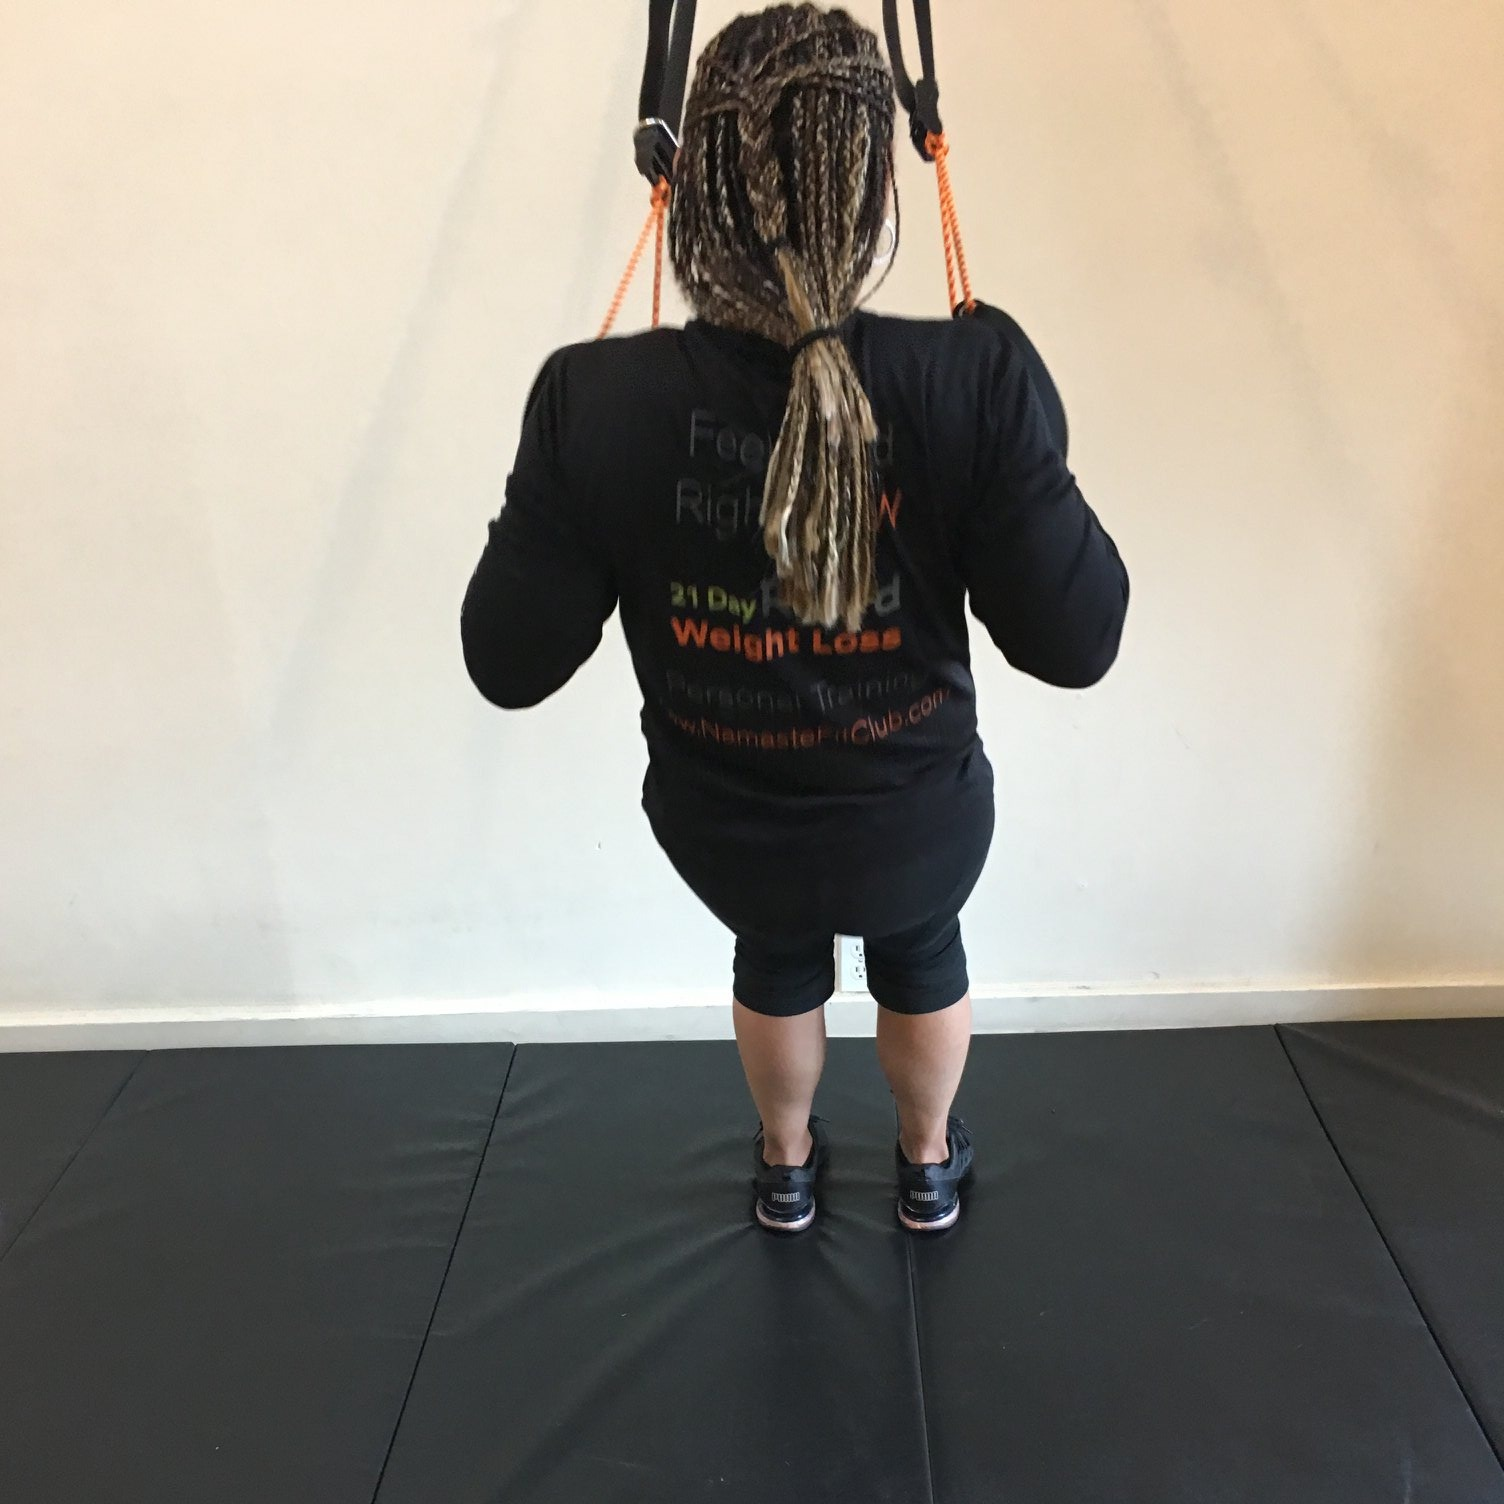 Schedule Your Fitness Assessment (Not From Fitness Challenge)